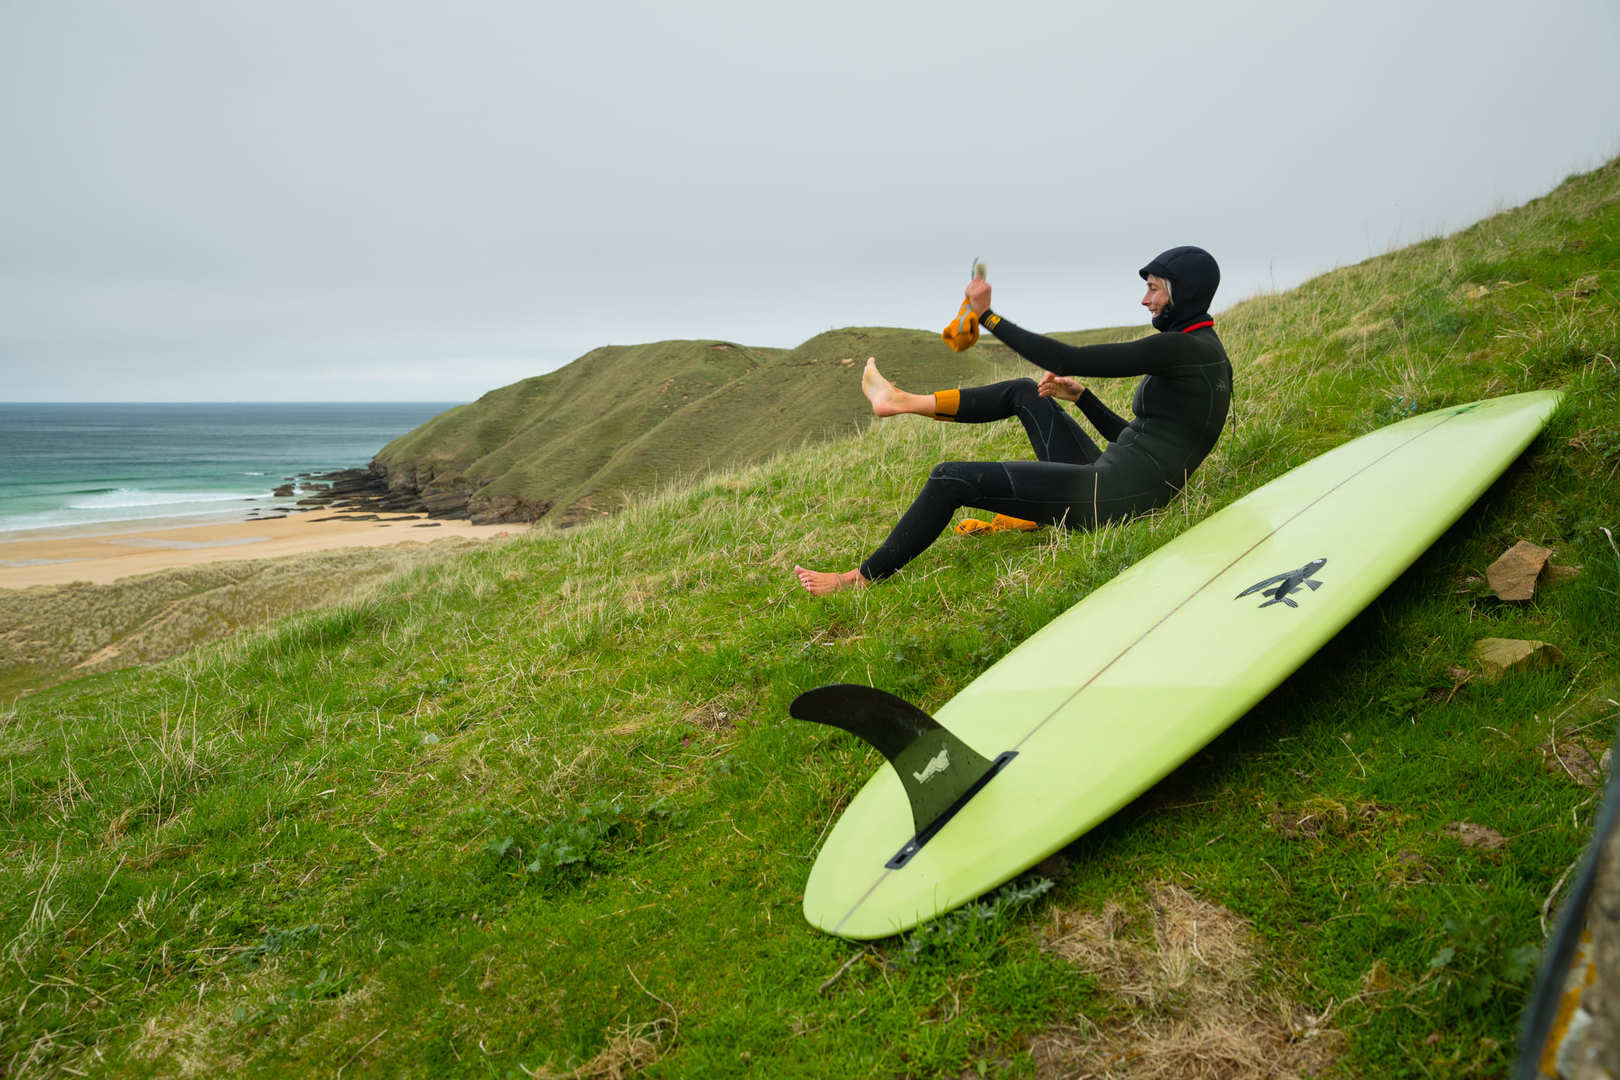 new concept c4b81 78d25 Patagonia decisa a cambiare l'industria del surf - 4ActionSport